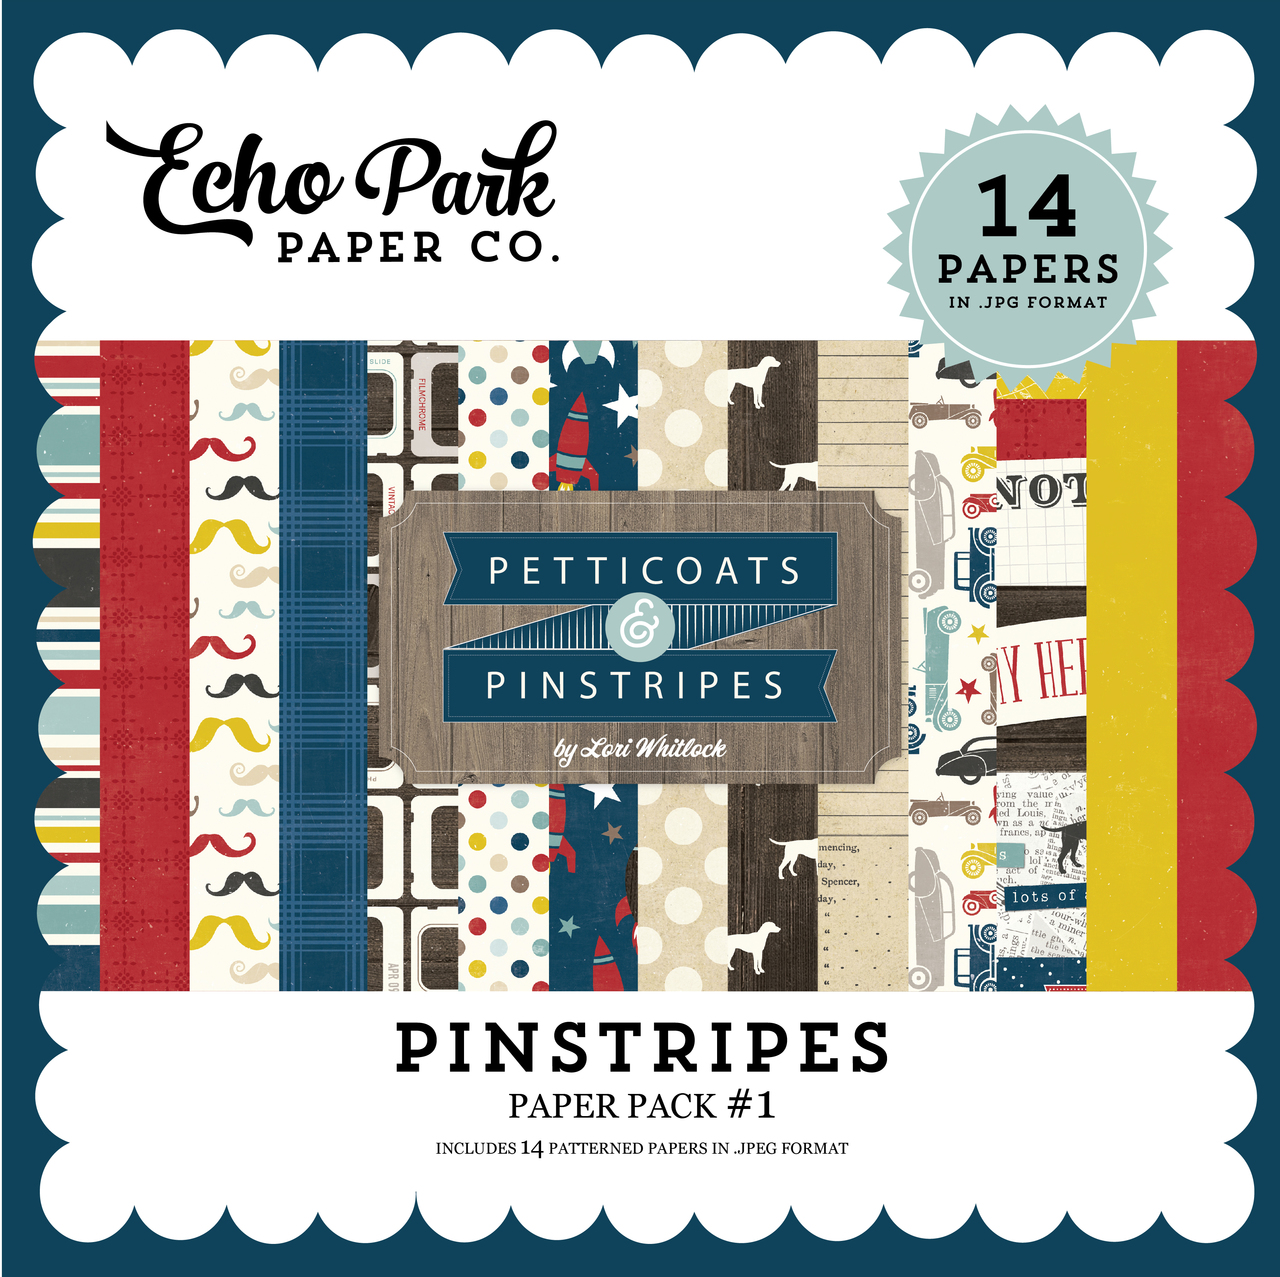 Pinstripes Paper Pack #1